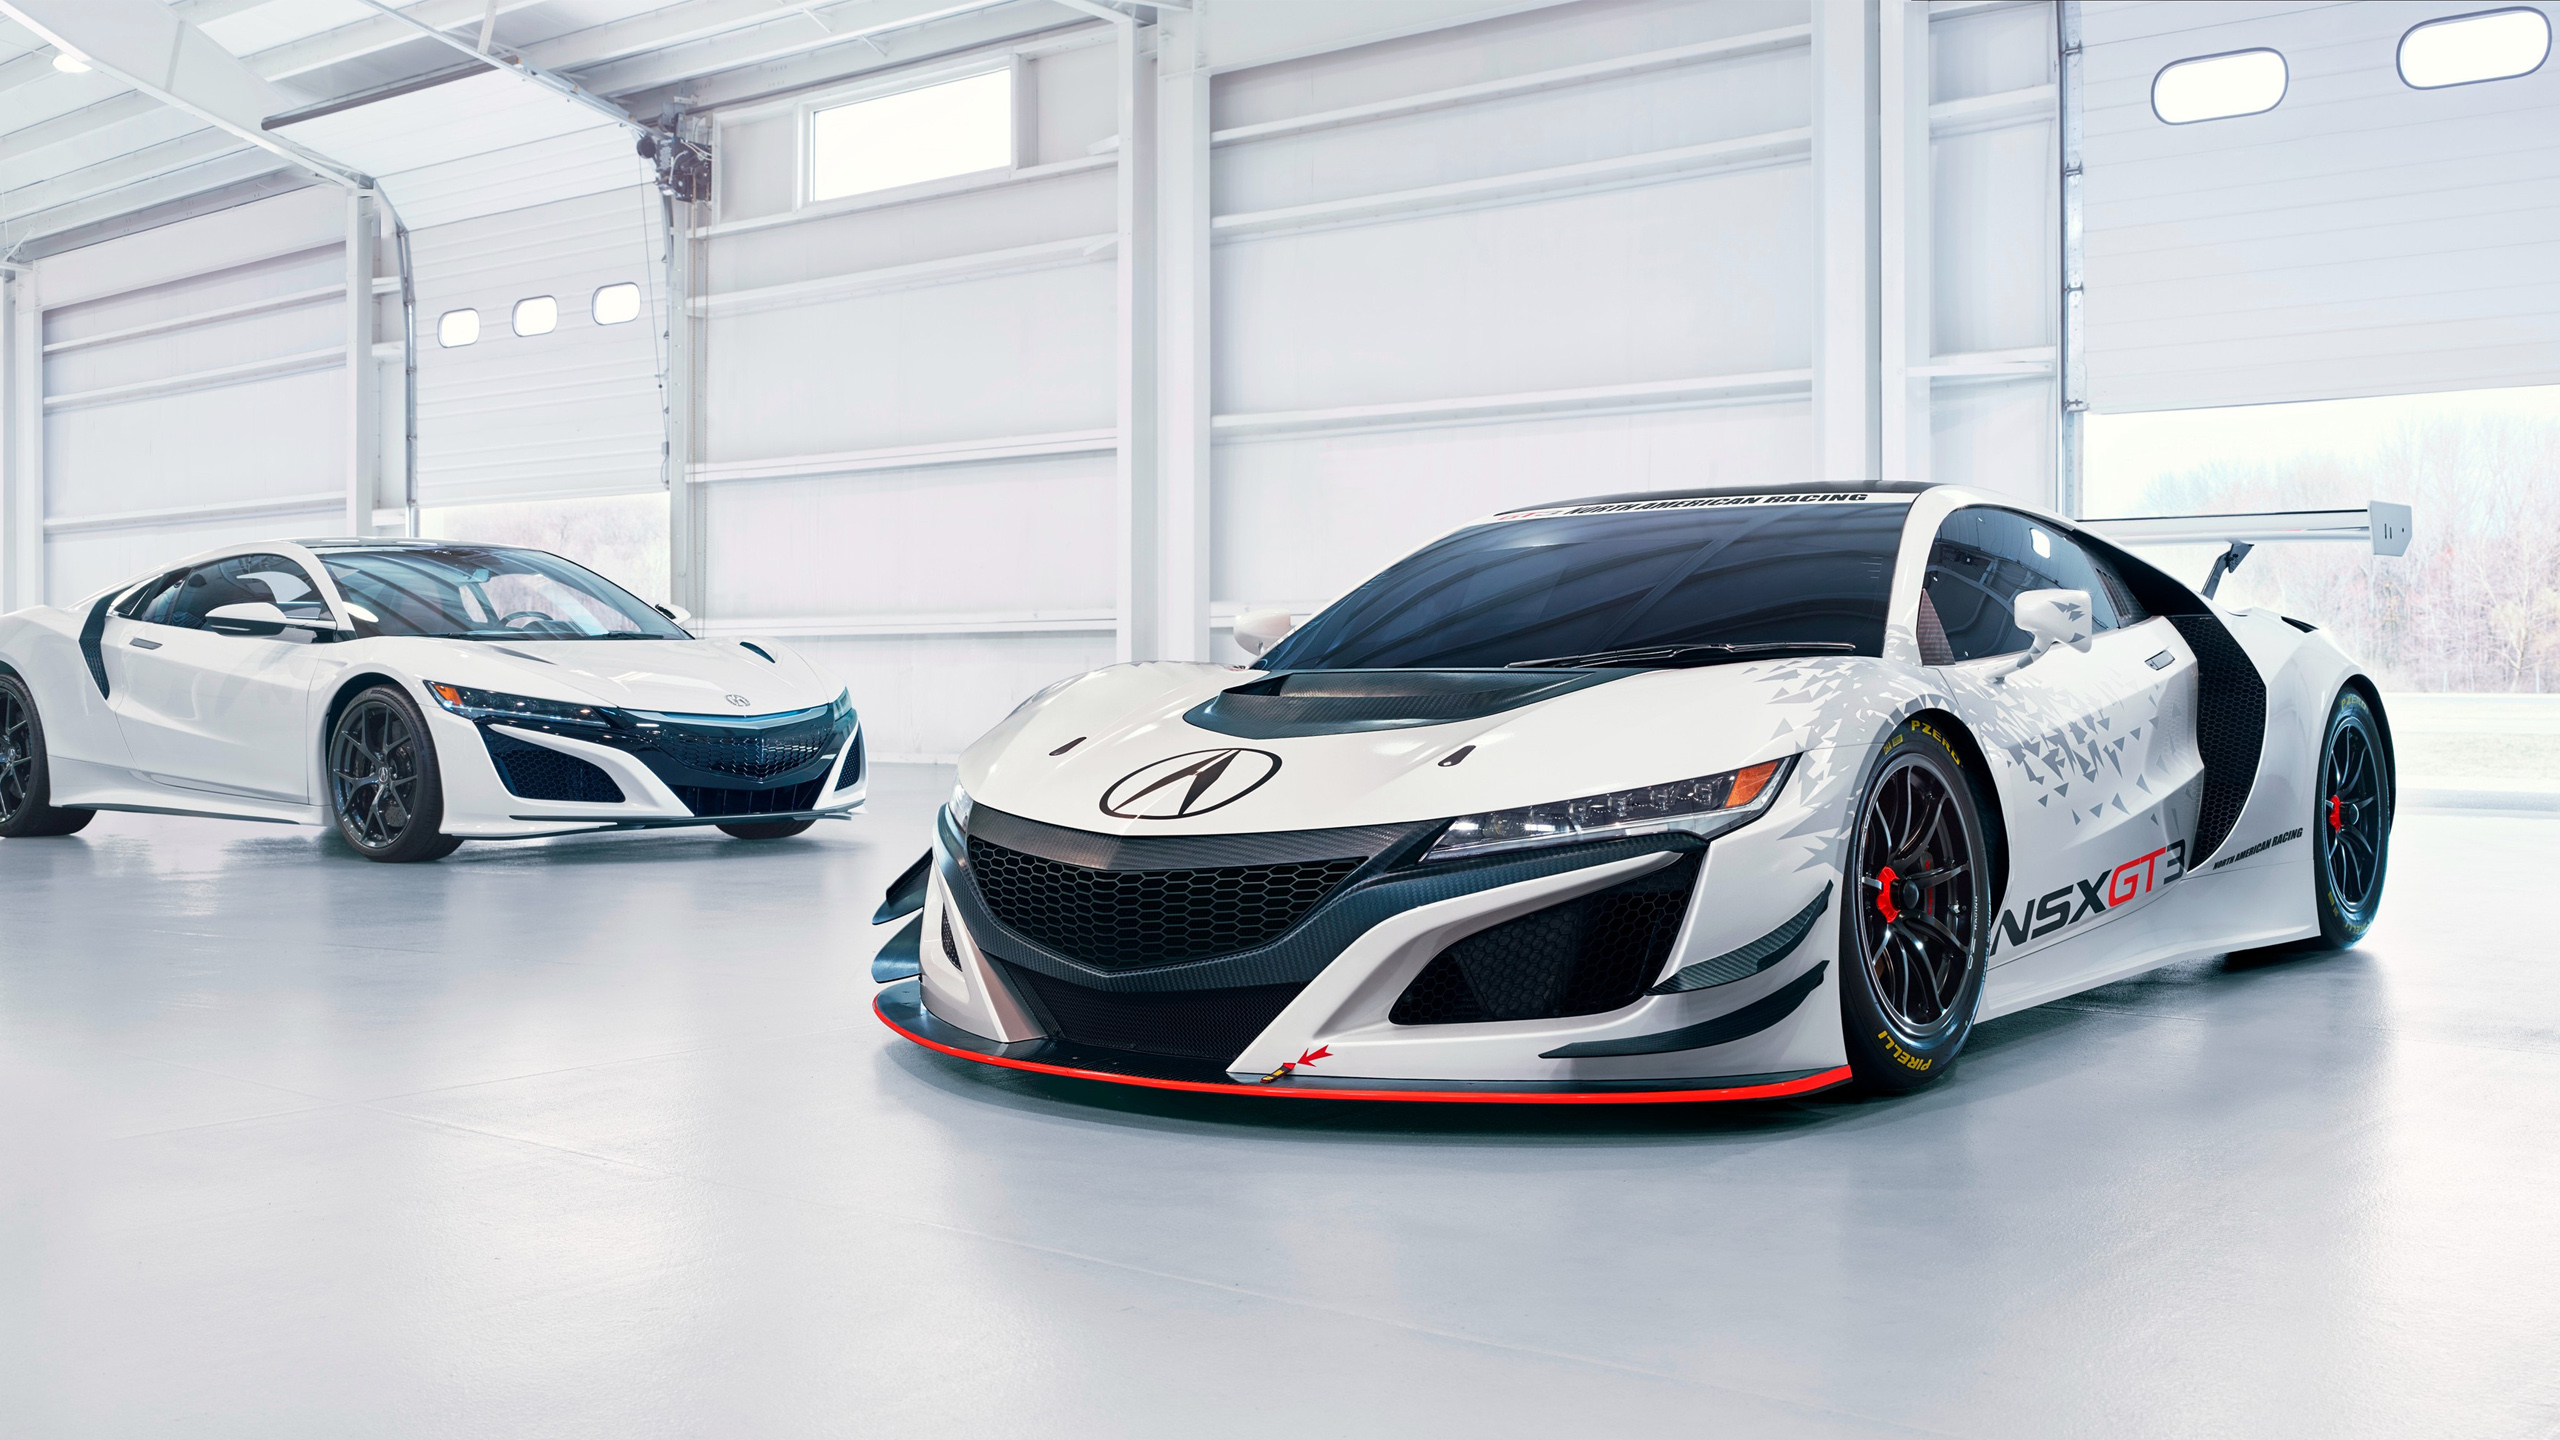 Acura NSX GT3 Wallpaper 323 2560x1440 px ~ PickyWallpapers com